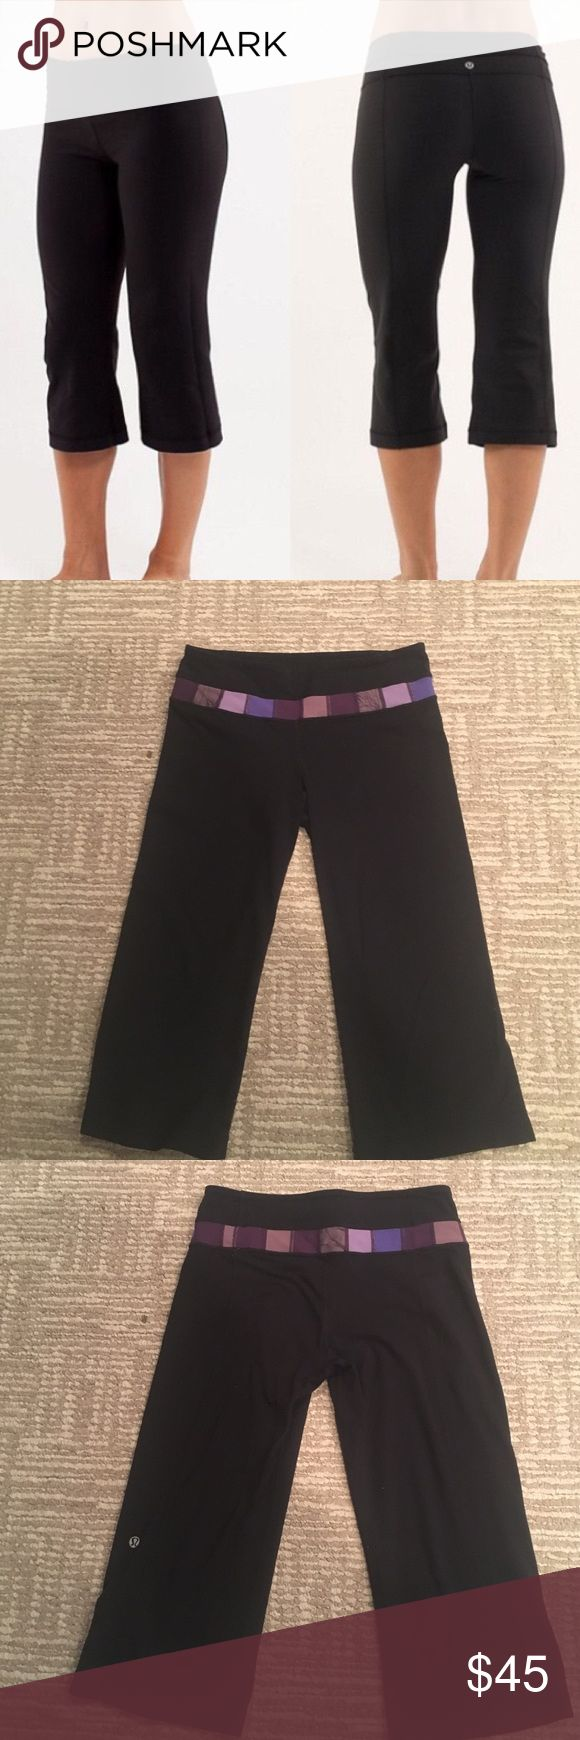 LULULEMON REVERSIBLE GROOVE CAPRIS Pre loved lululemon groove capris reversible one side solid black other side black with purple waistband super cute comfy and stylish some minor pilling from washing otherwise perfect condition! Follow for deals bundle for discounts lululemon athletica Pants Capris